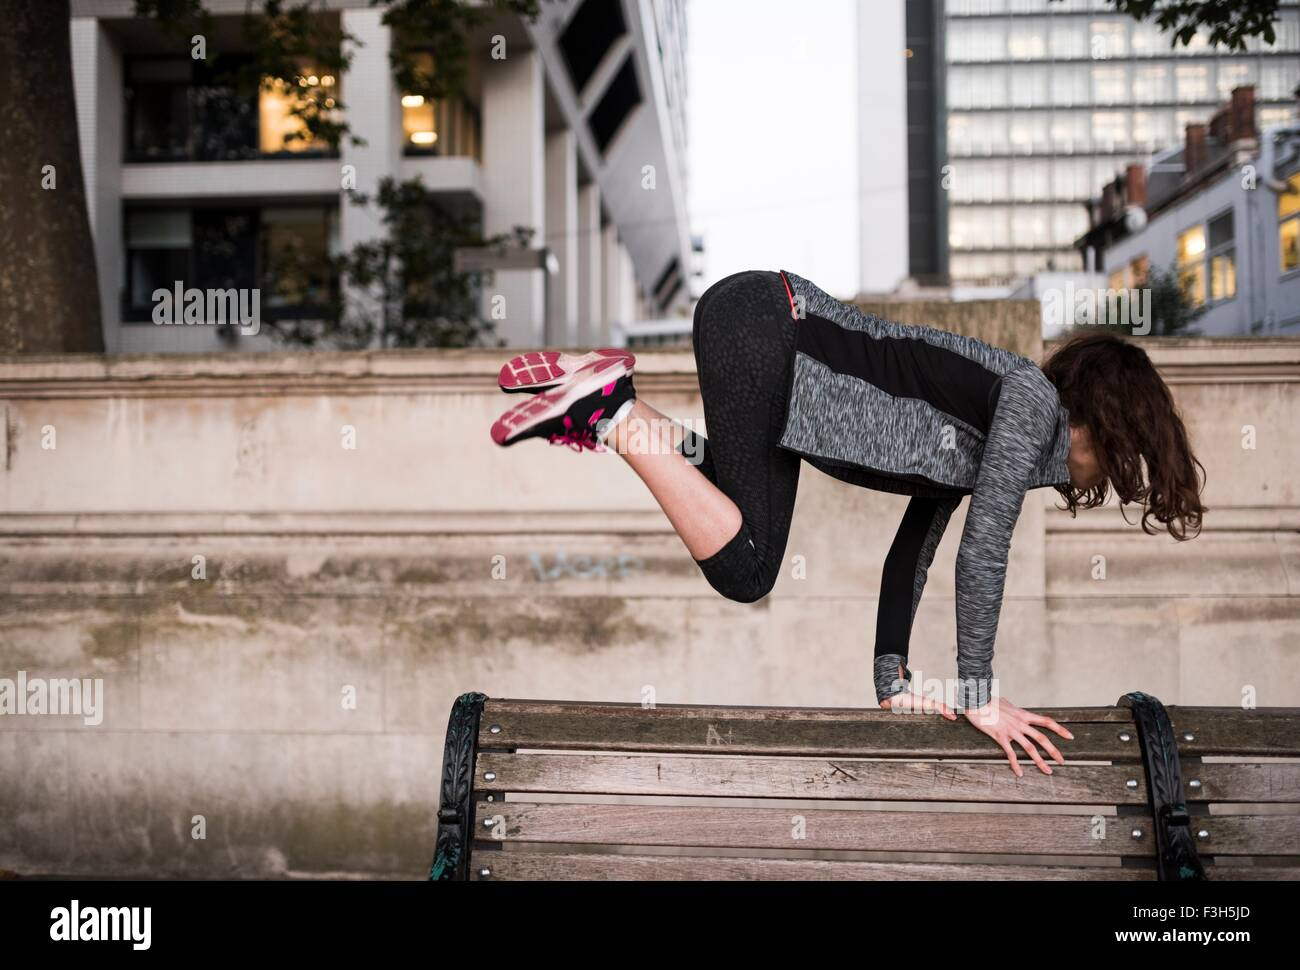 Young woman jumping over park bench in city - Stock Image